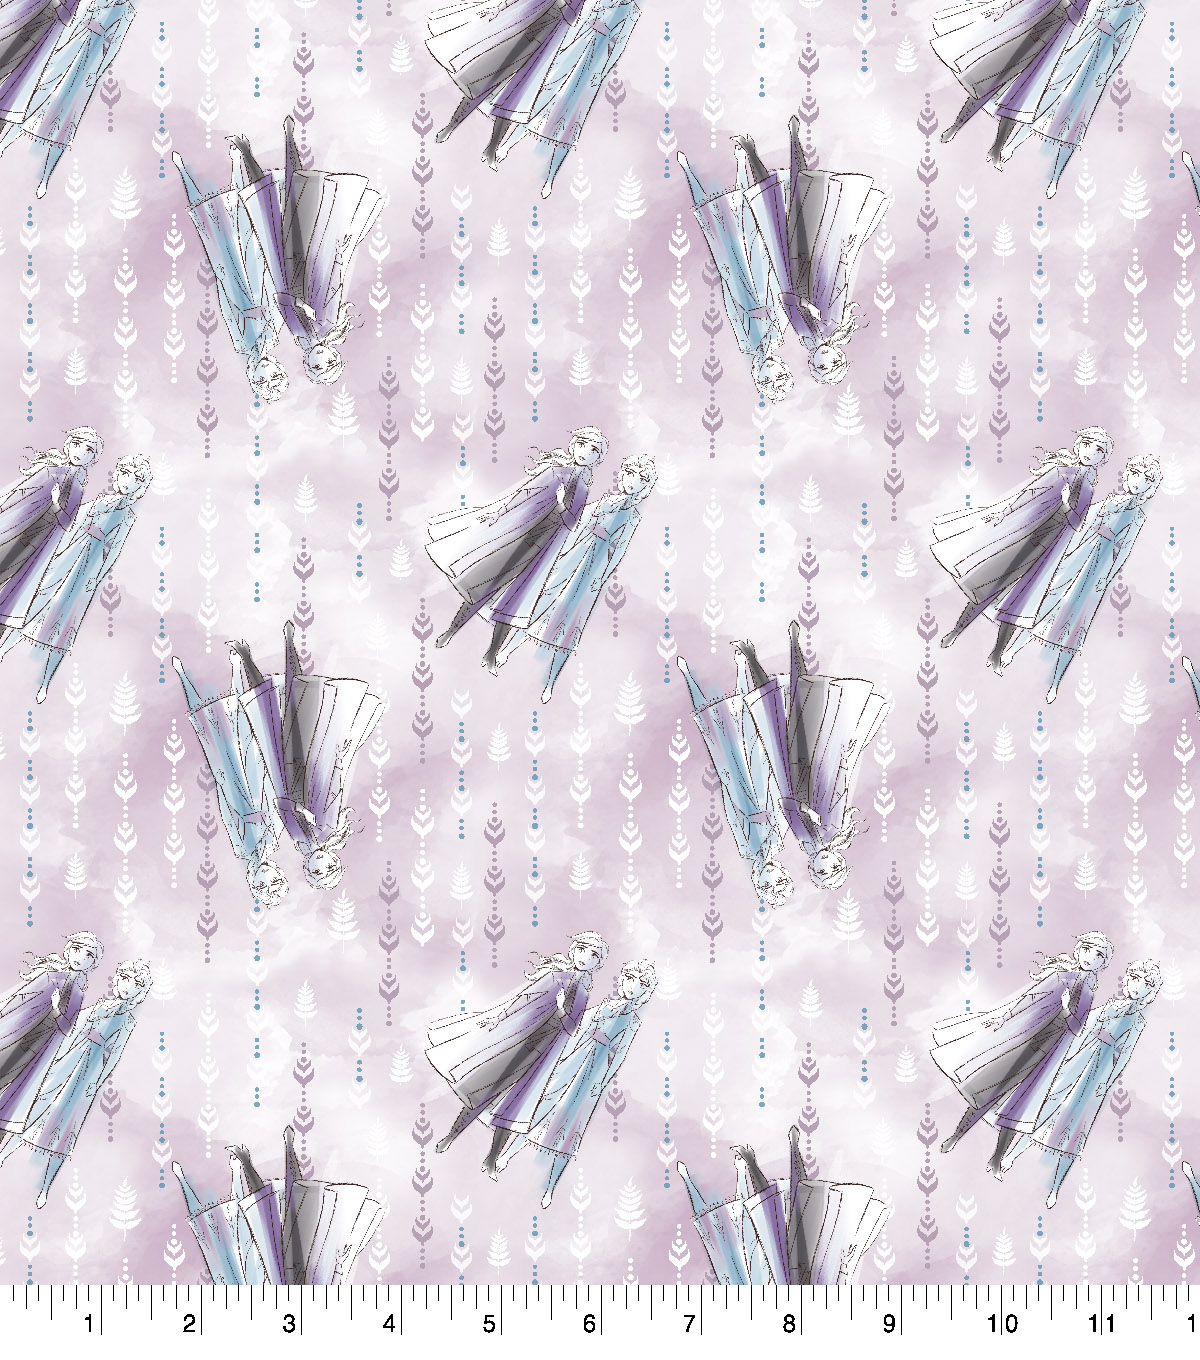 Disney Frozen 2 Cotton Fabric-Sketch Sisterly Love Digital